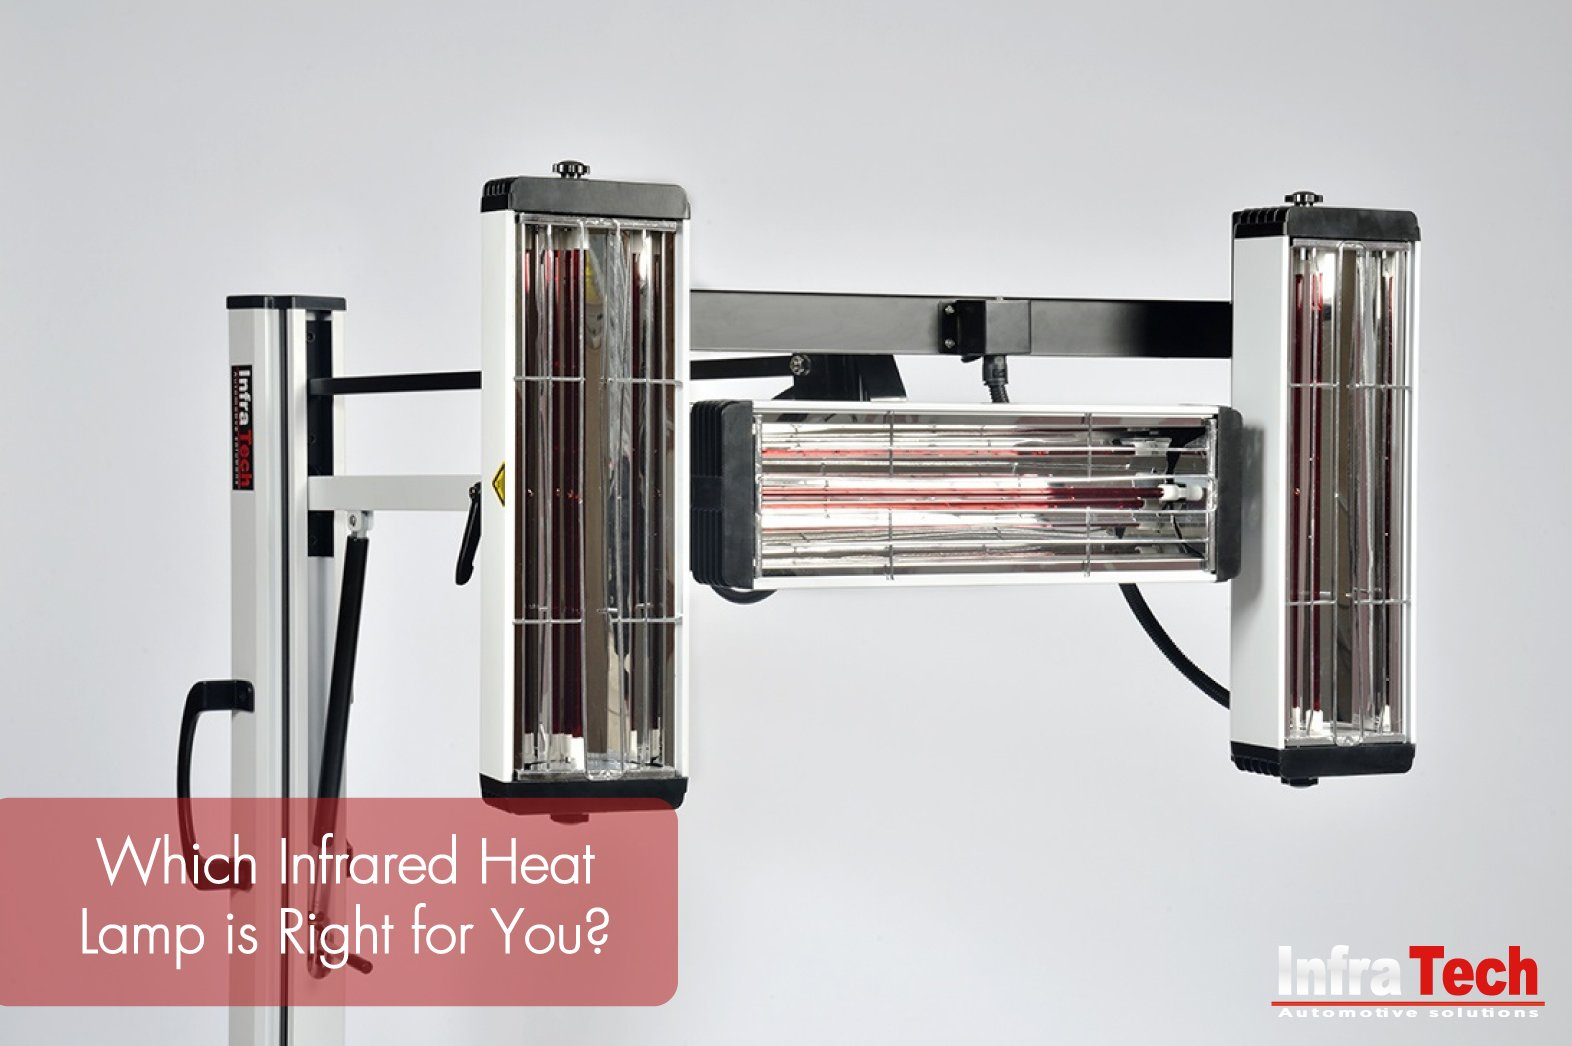 which infrared heat lamp is right for you?